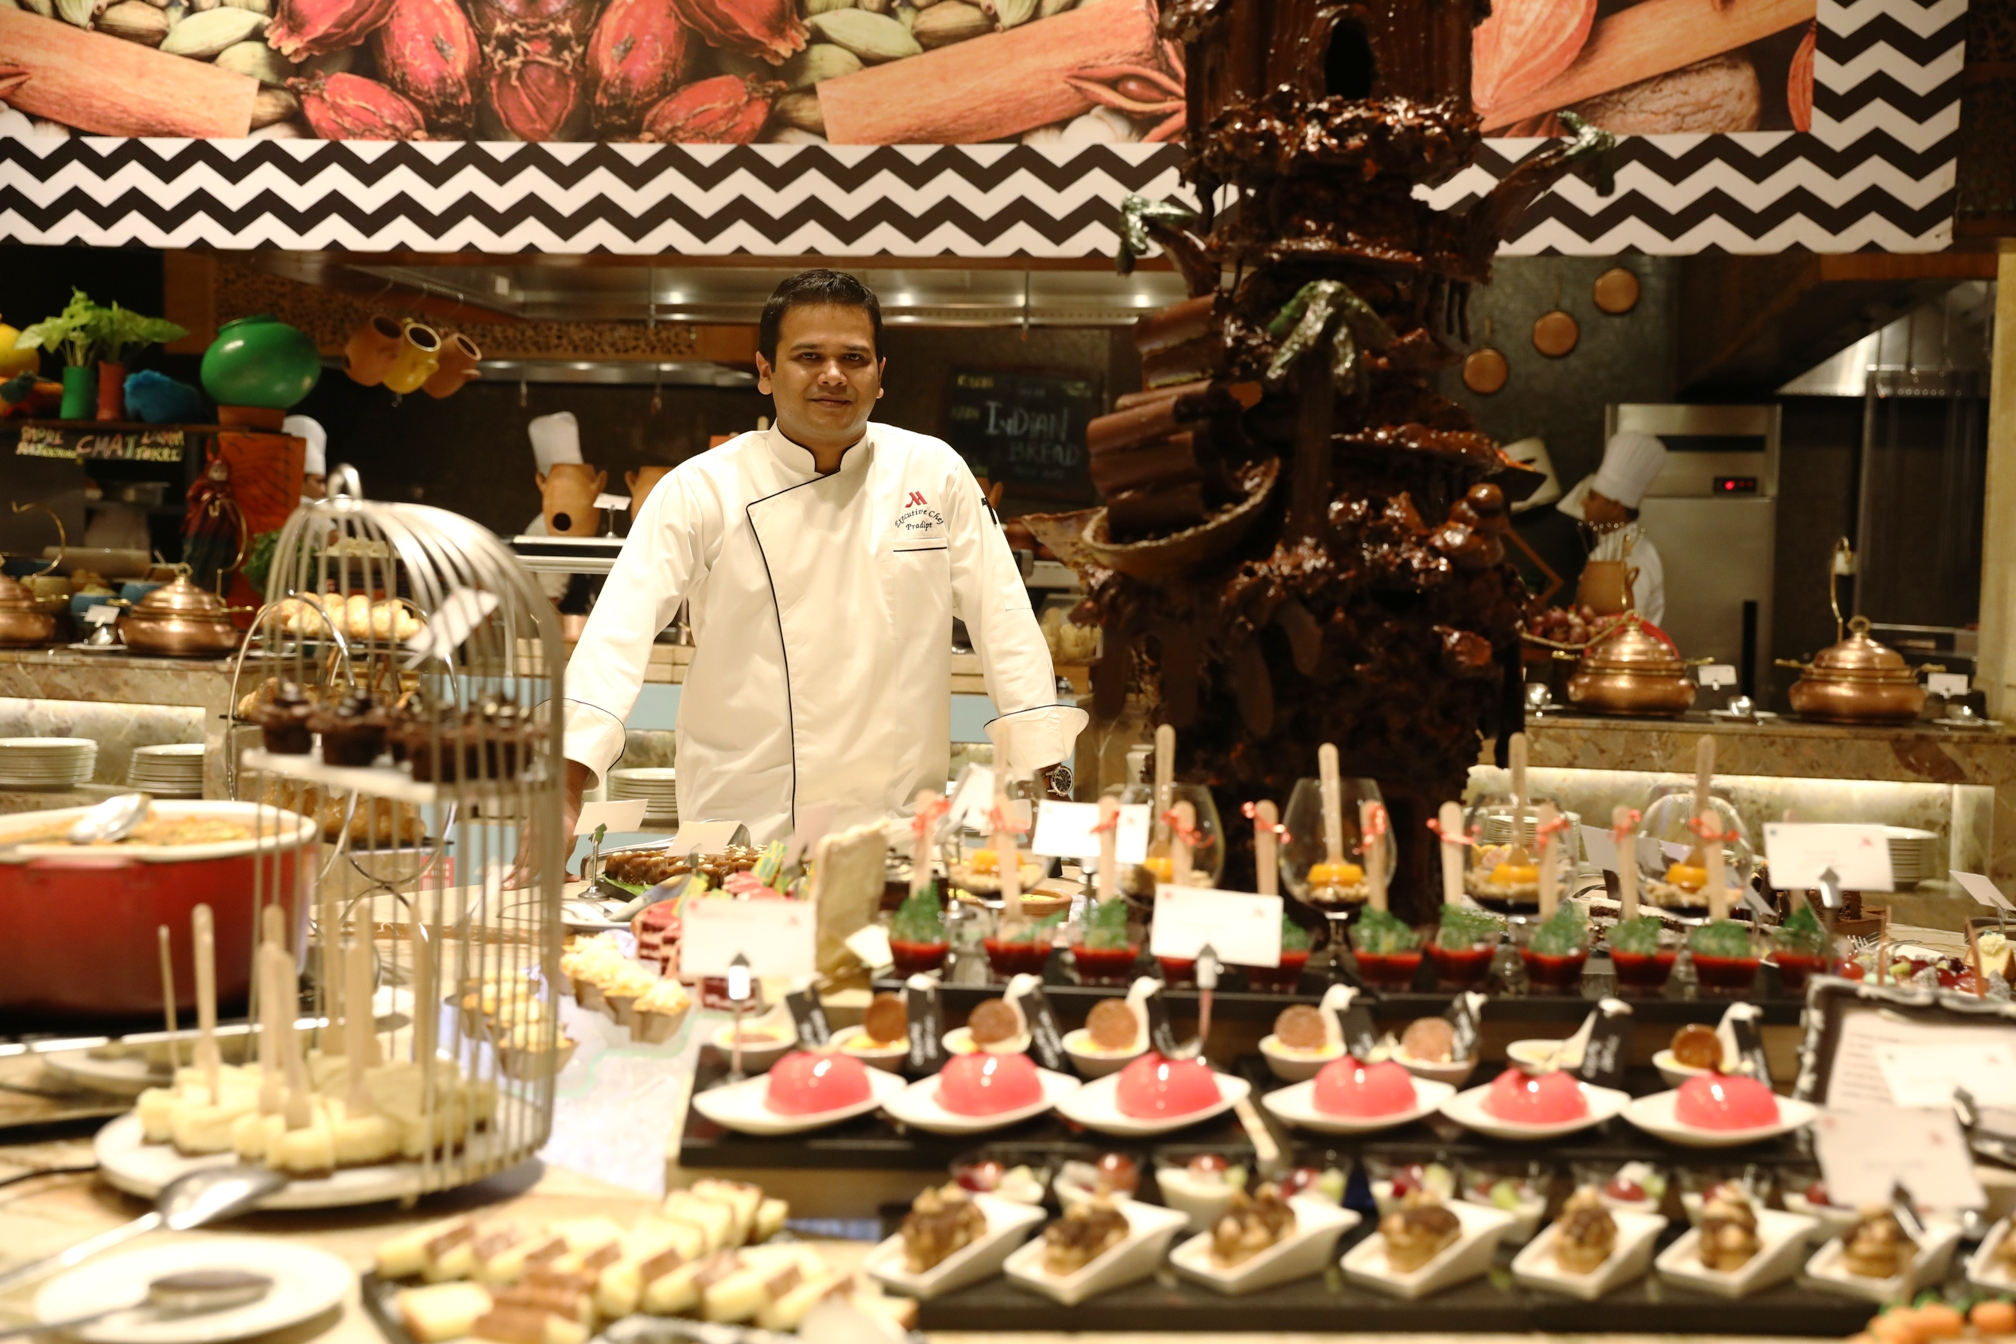 Street Food from 18 countries on offer at this Food Festival in Jaipur Marriott